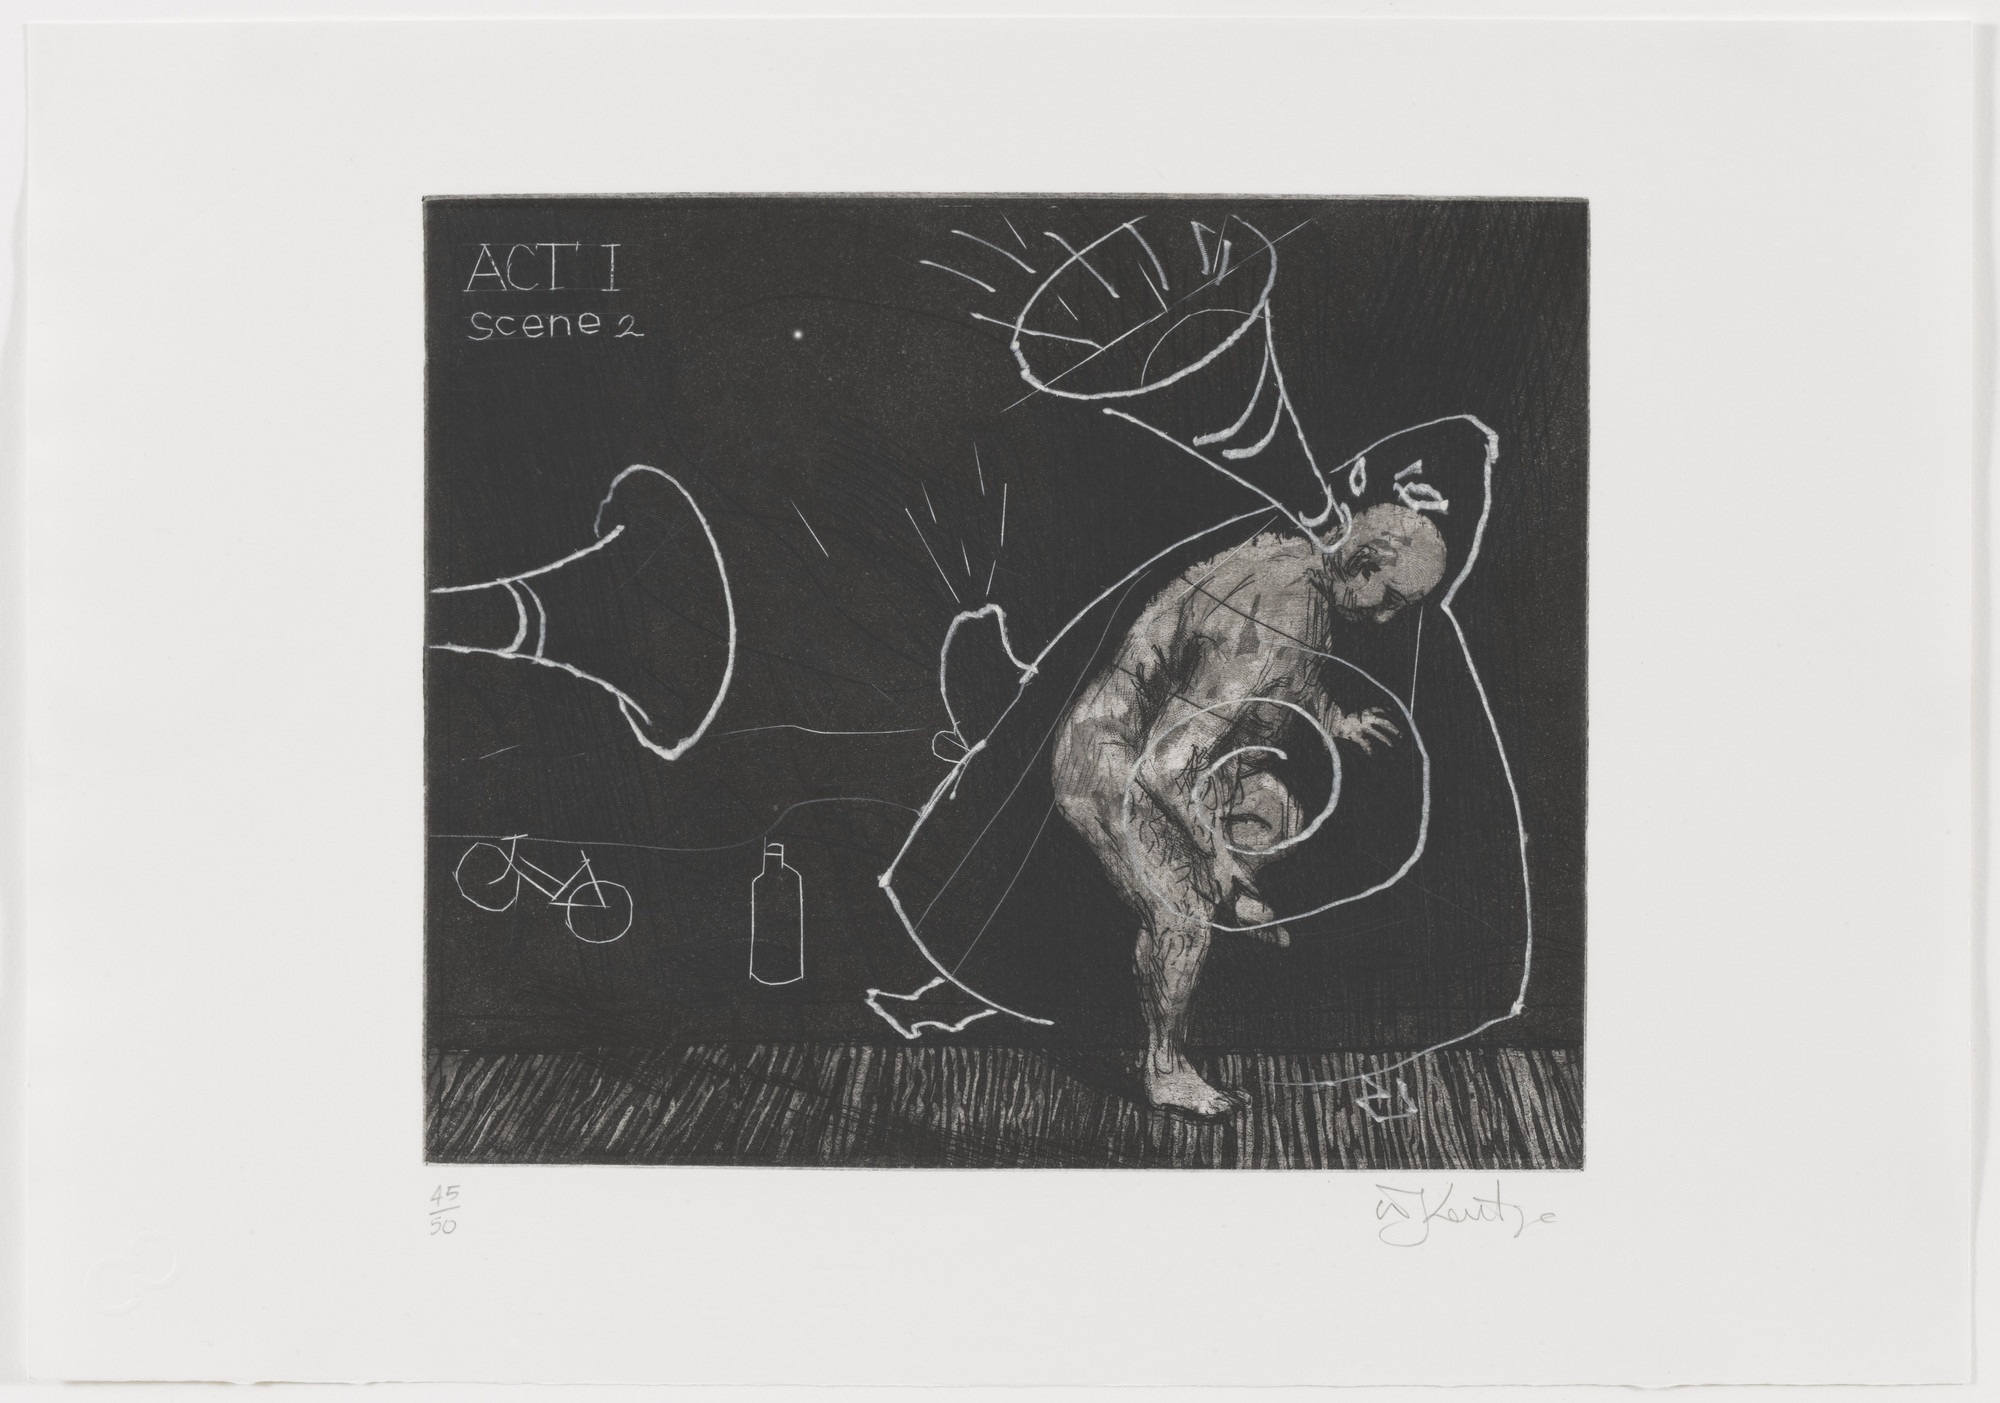 William Kentridge. Act I Scene 2 from Ubu Tells the Truth. 1996–97